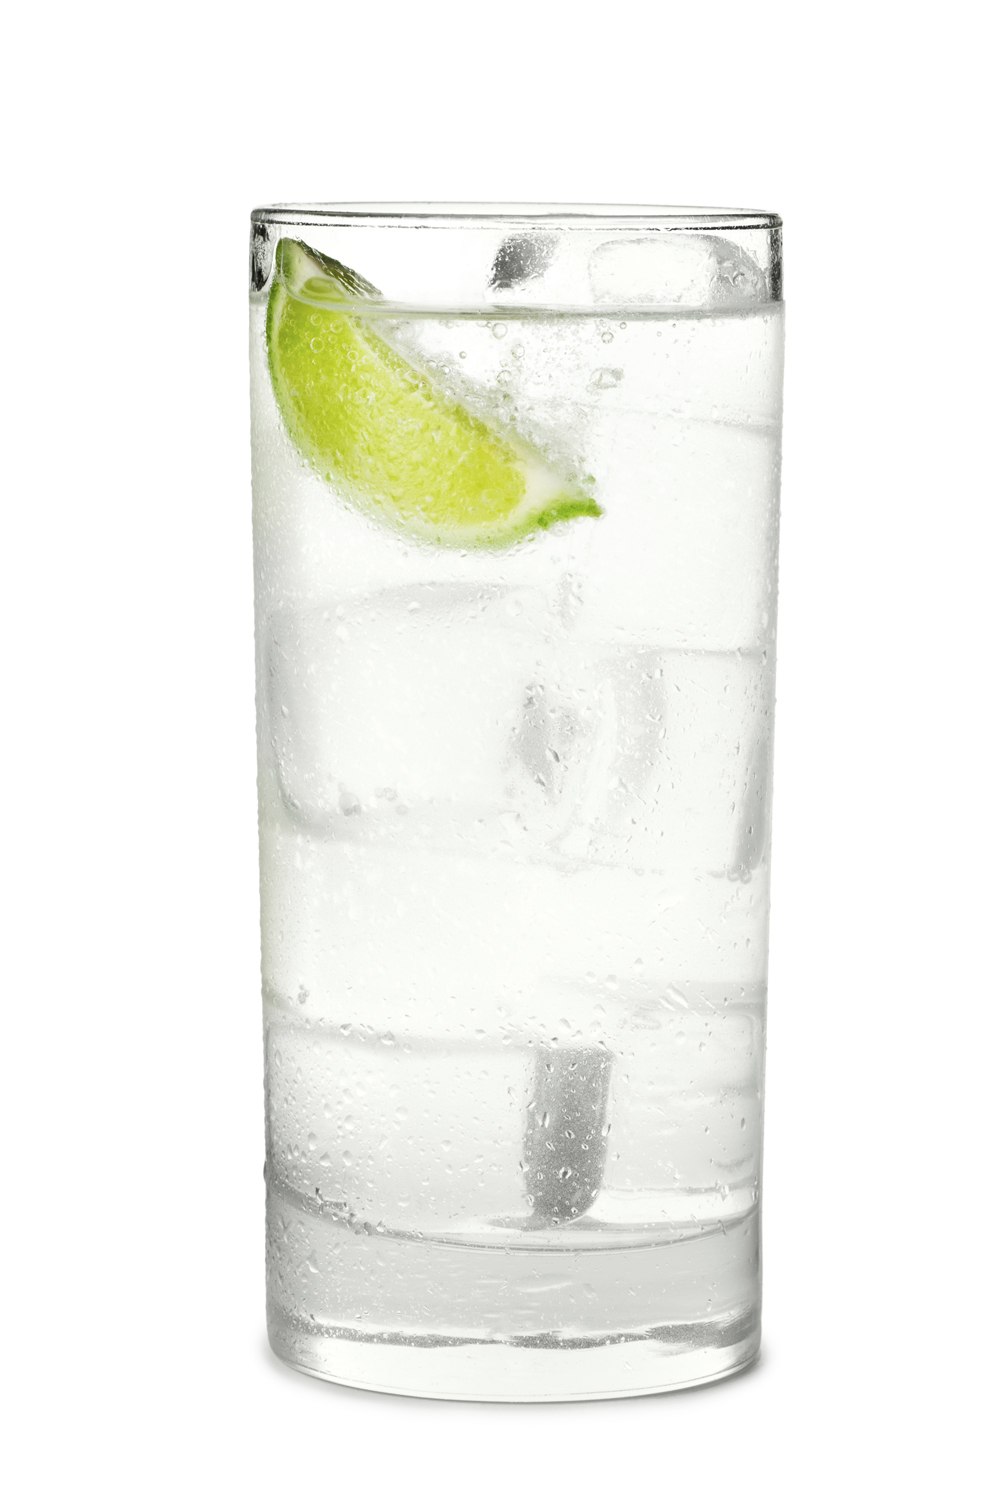 Club Soda Alcohol Drinks